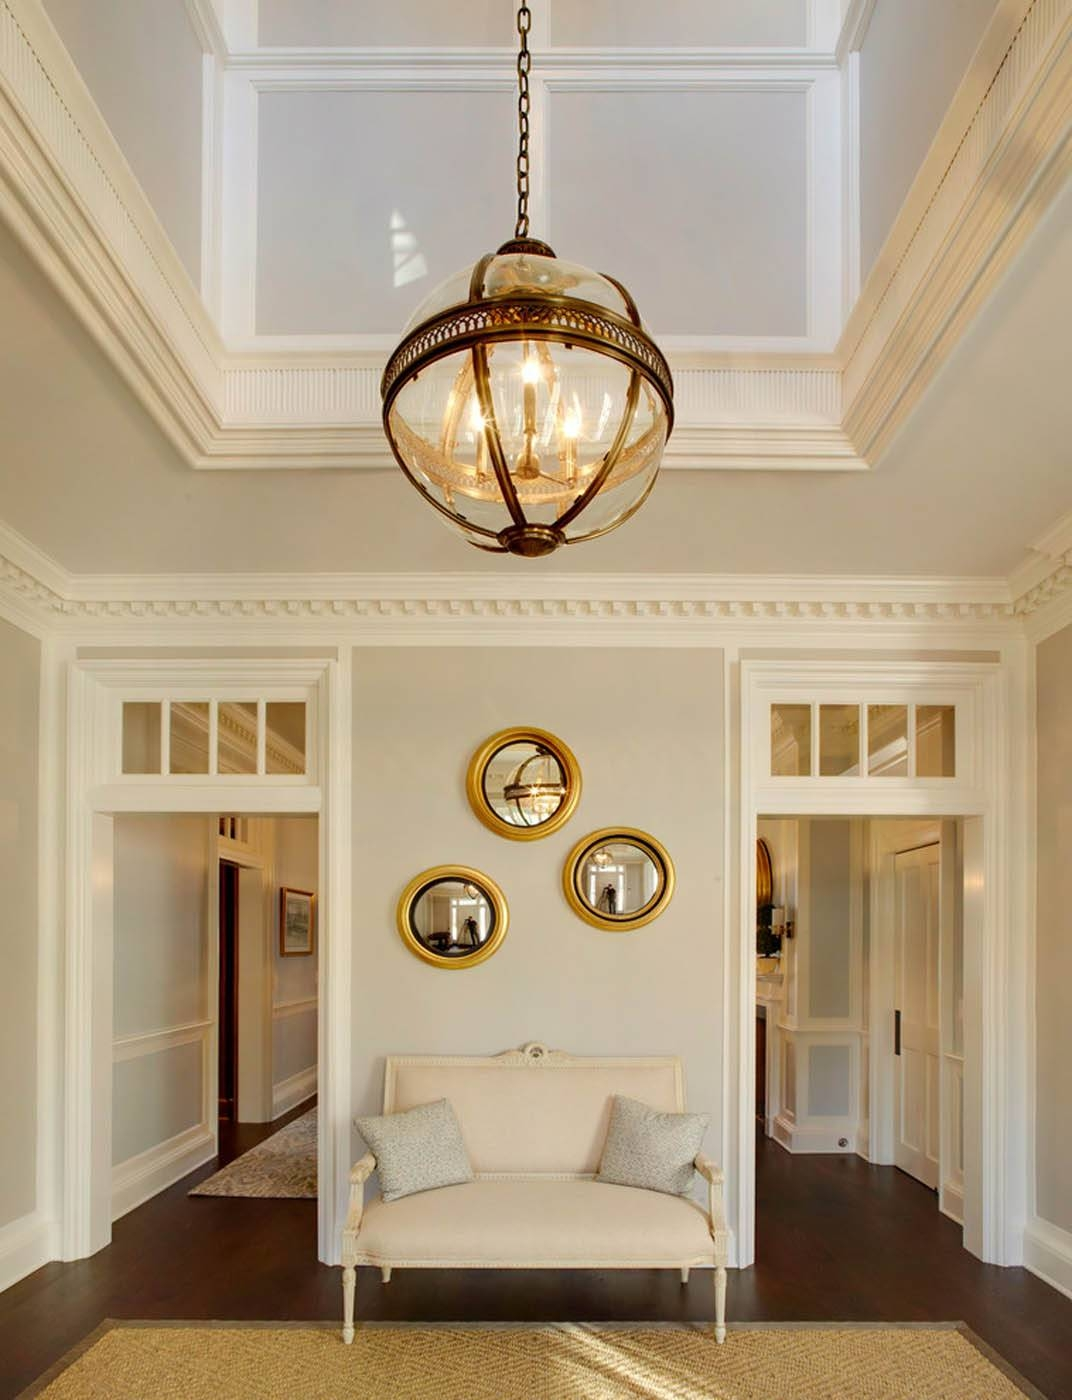 Entries Rooms That Inspire throughout Victorian Hotel Pendant Lights (Image 8 of 15)